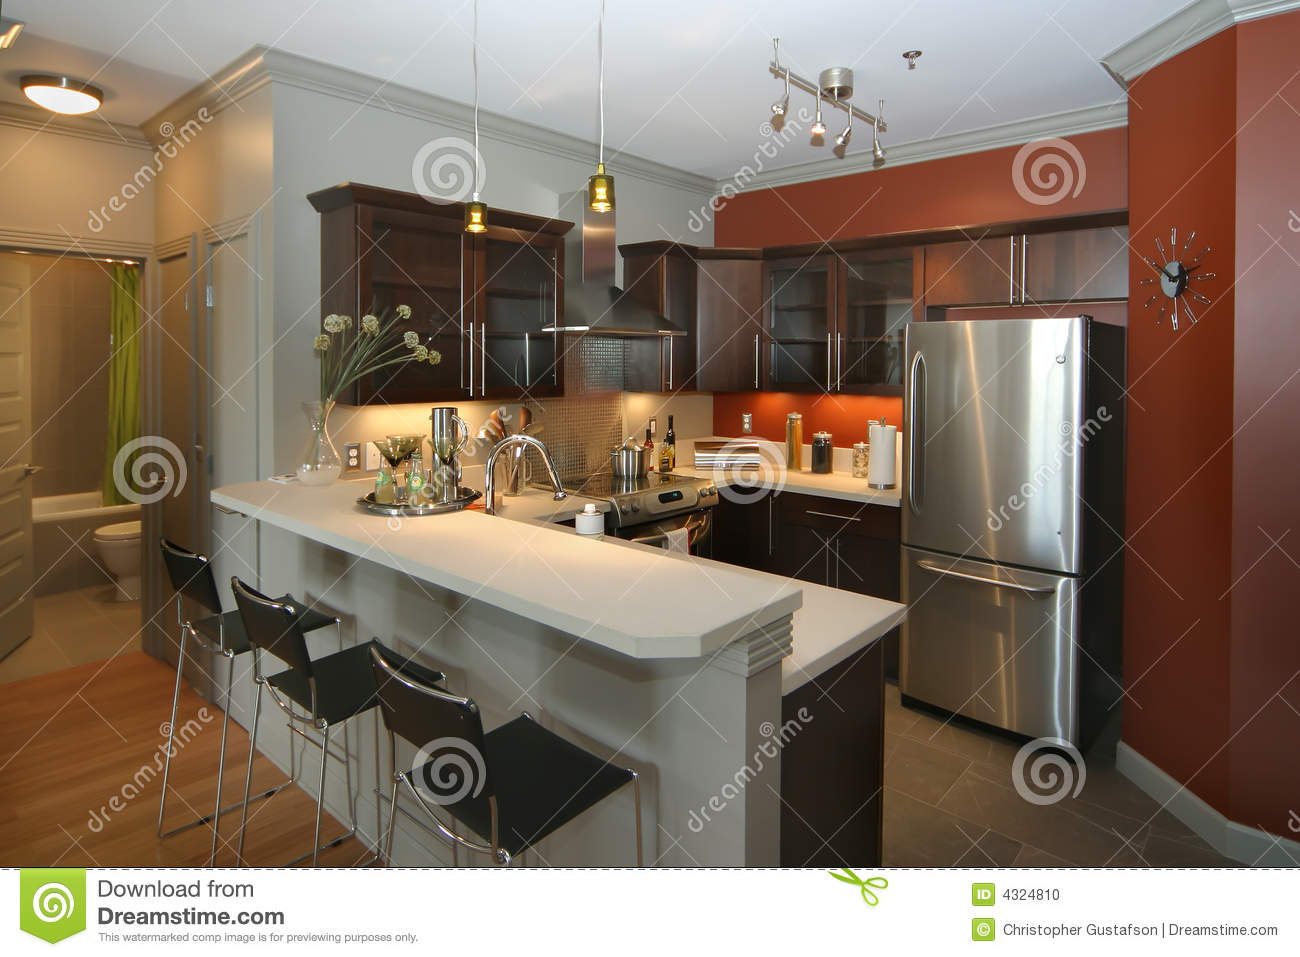 Modern kitchen with bar area stock photo image of for Des cuisines modernes